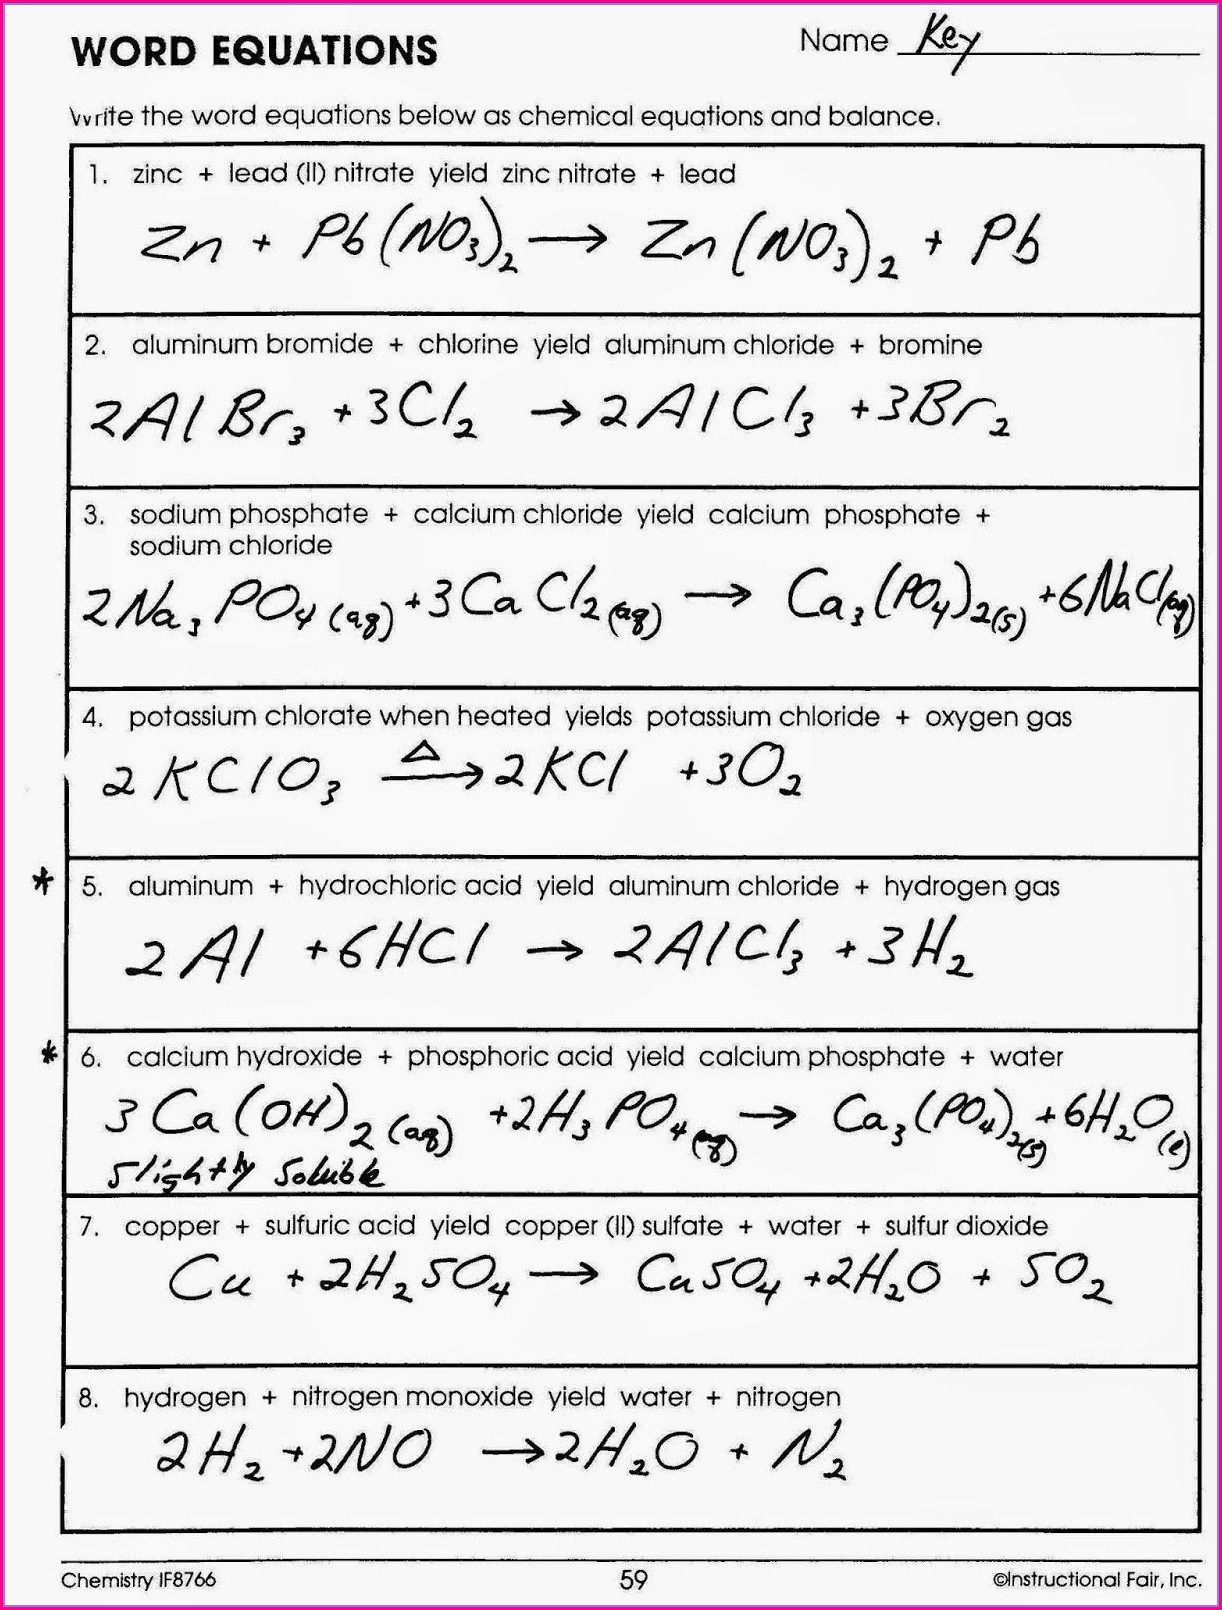 Writing Word Equations Worksheet Answers